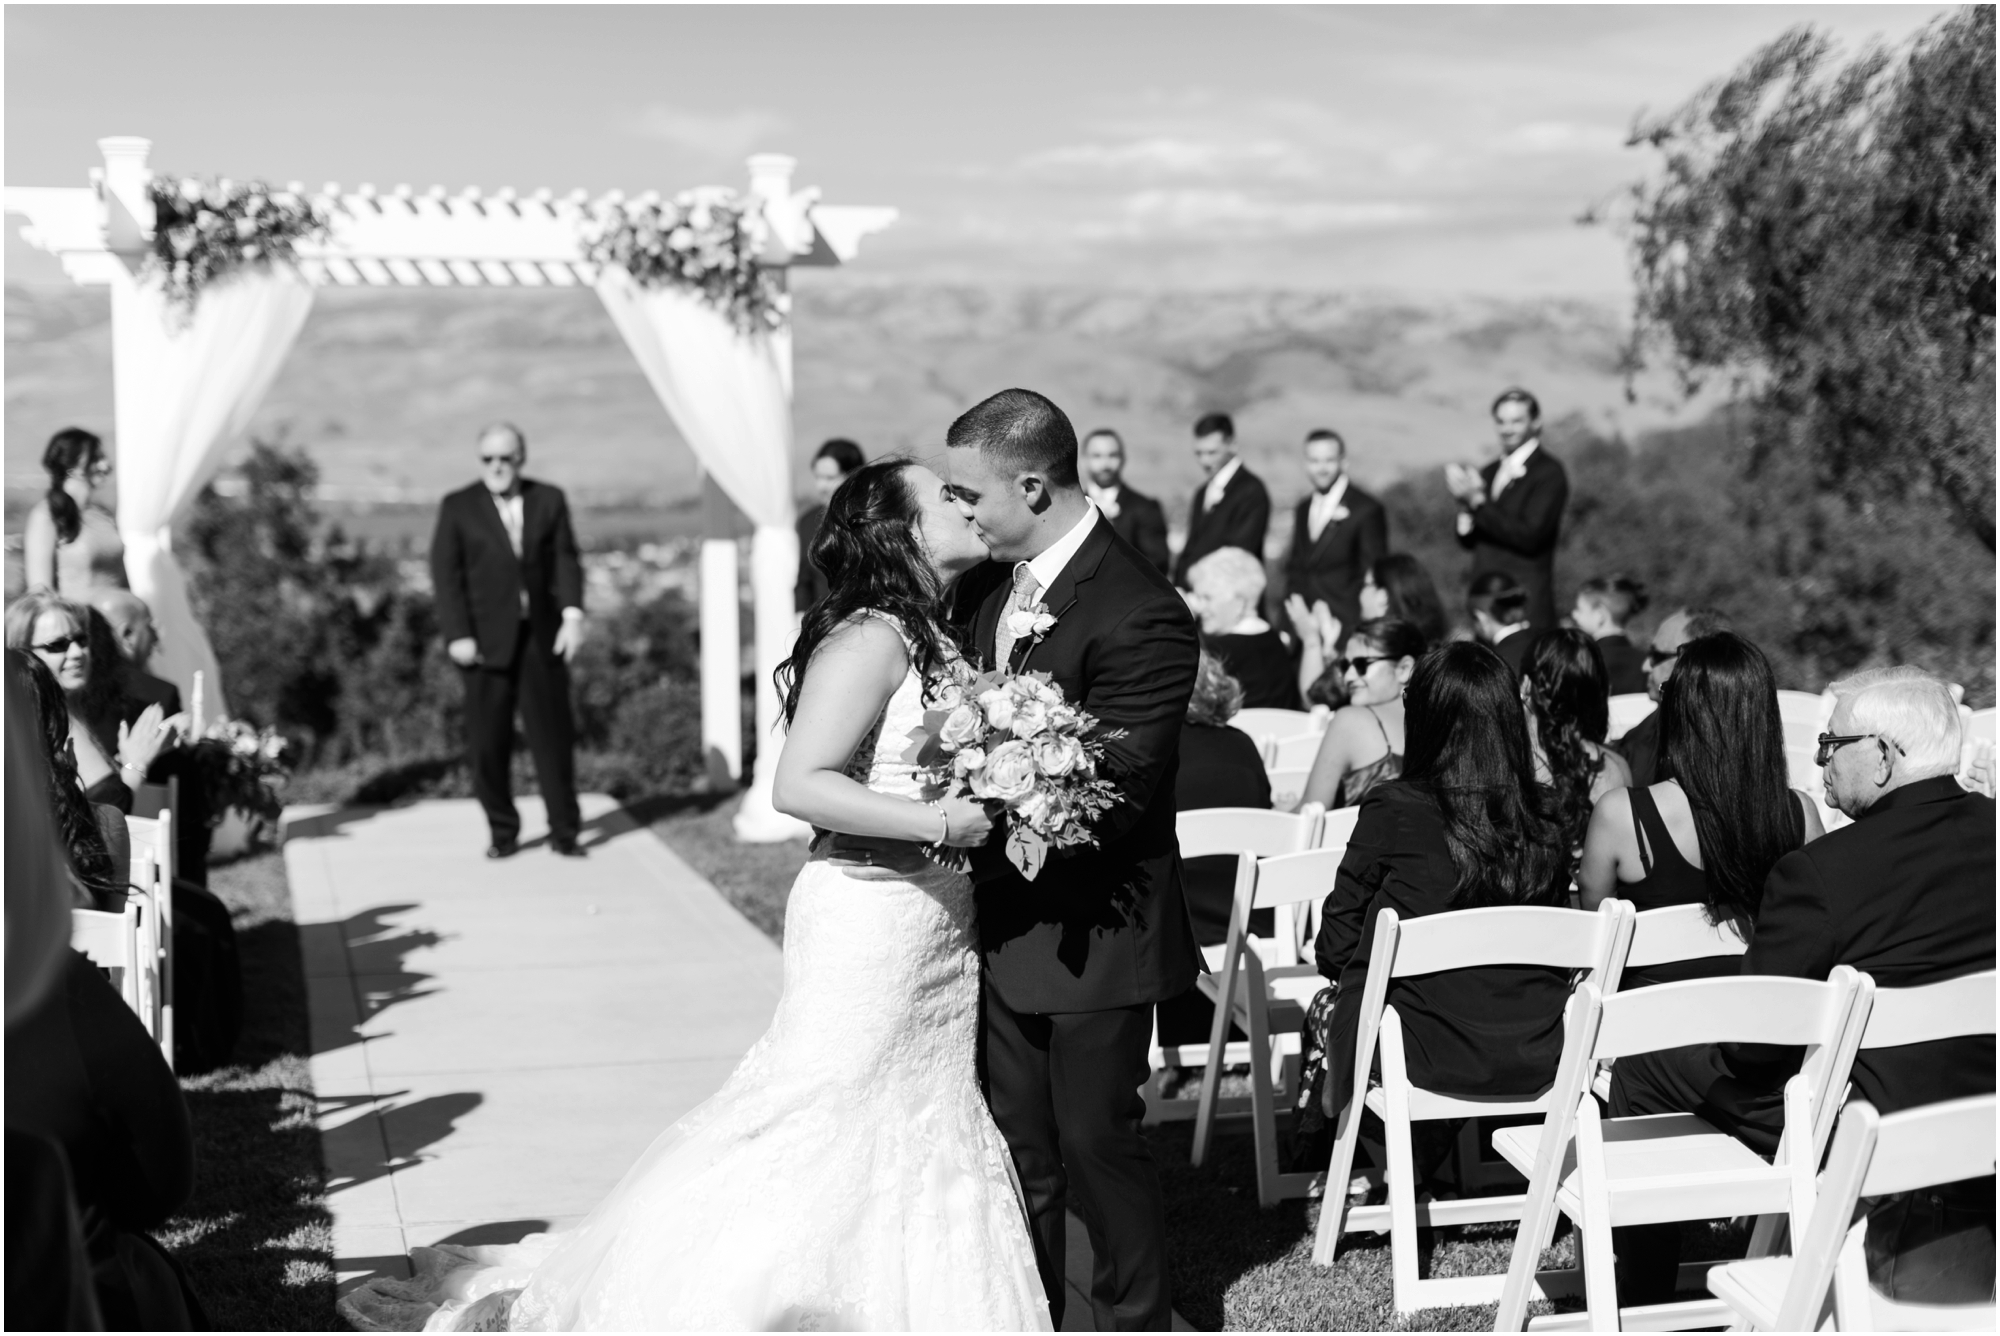 Willow Heights Mansion wedding by Briana Calderon Photography based in the Greater Seattle & Tacoma, WA_0858.jpg